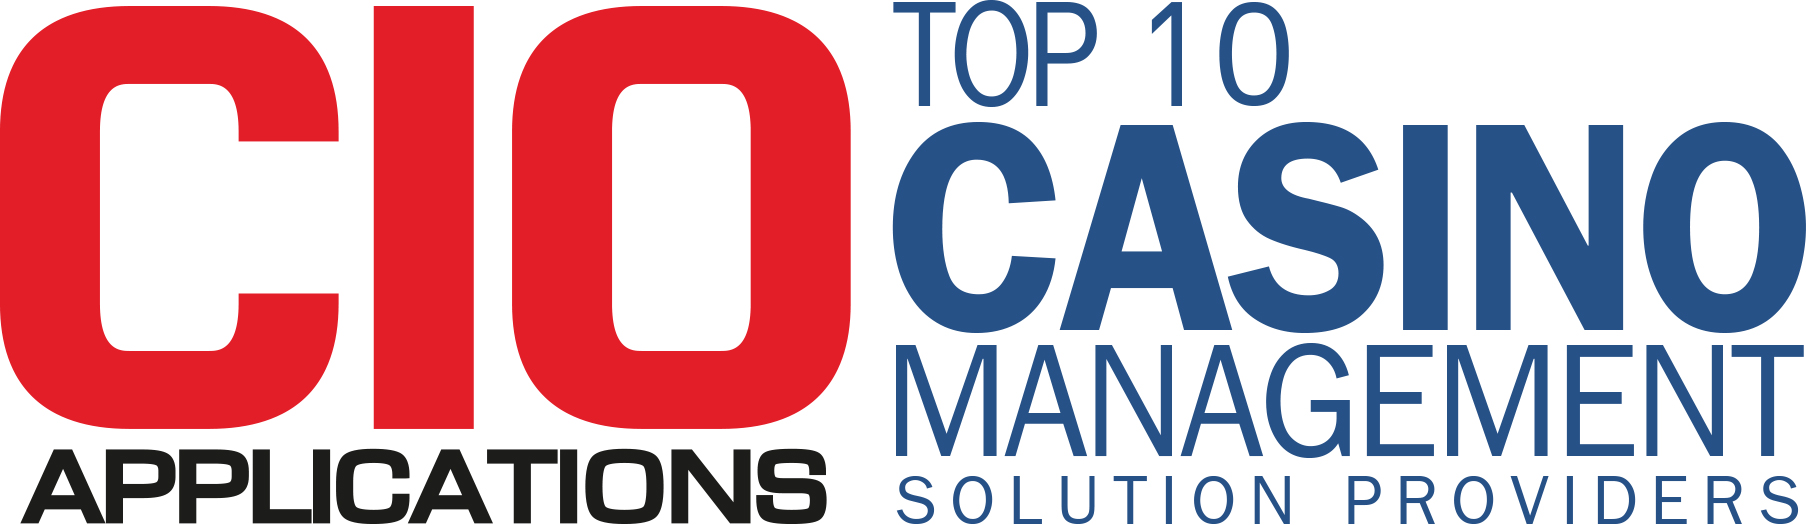 Top 10 Casino Management Solution Companies - 2019